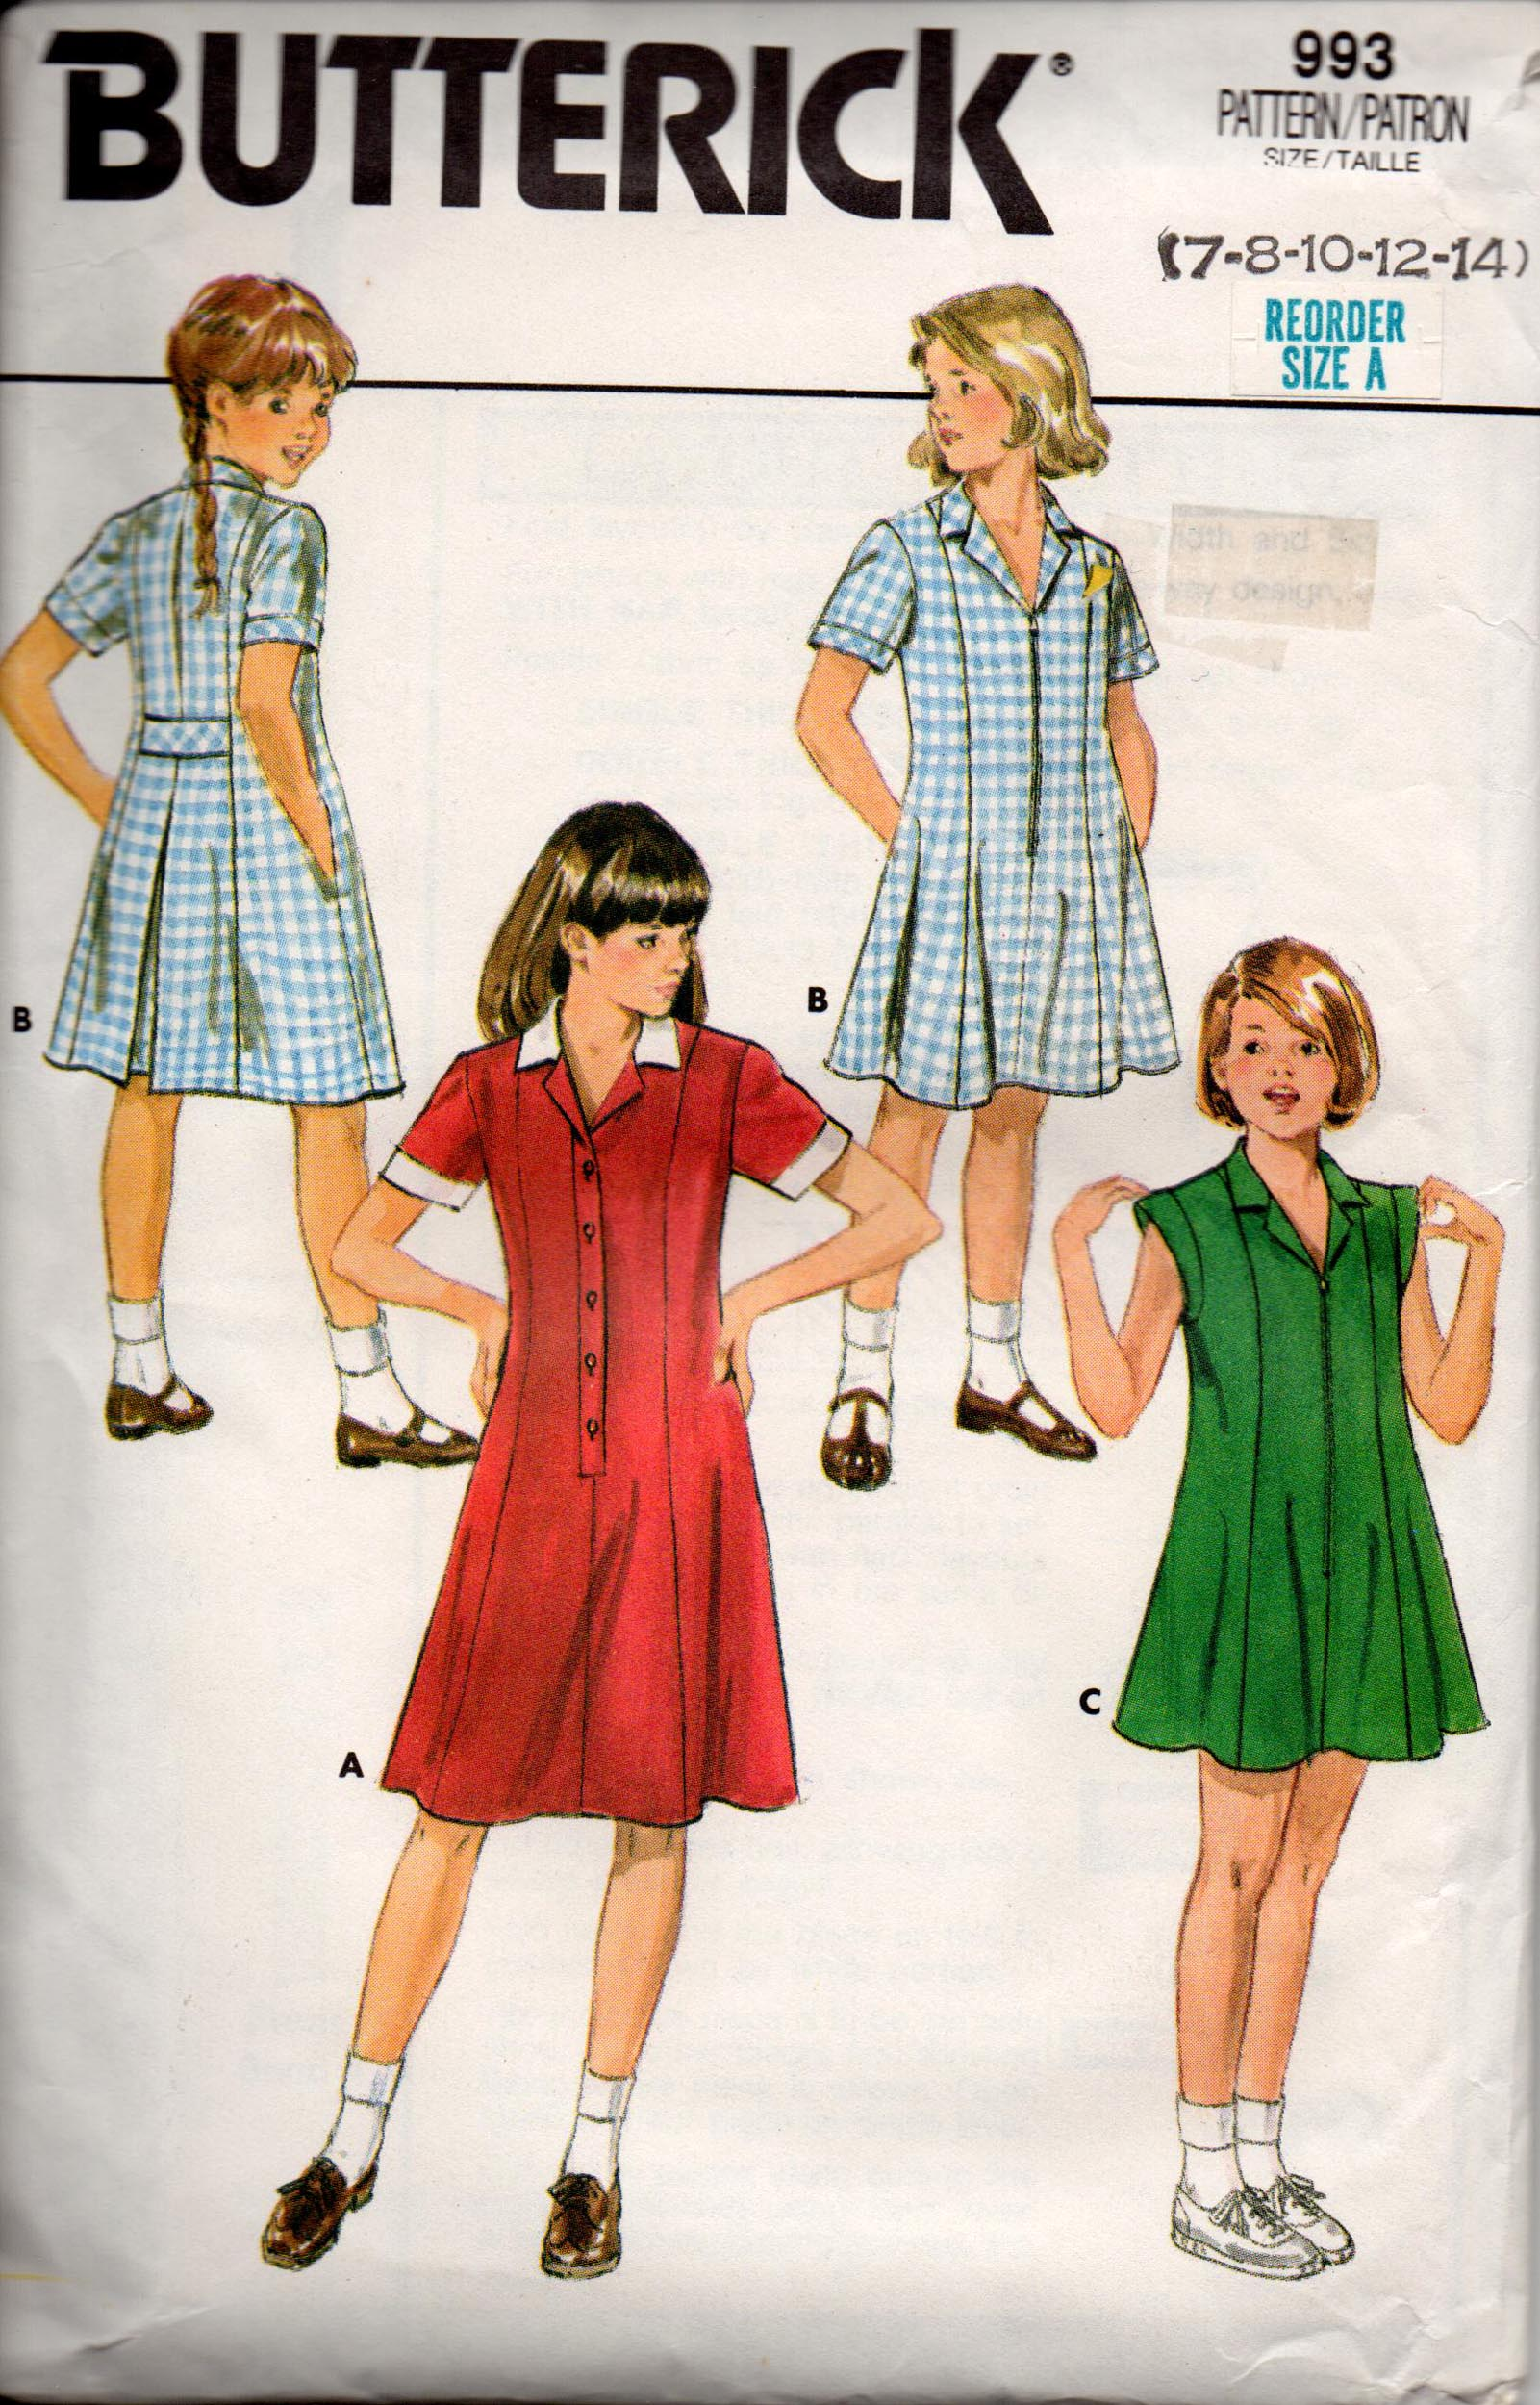 Butterick 993 vintage sewing patterns fandom powered by wikia img254 jeuxipadfo Images